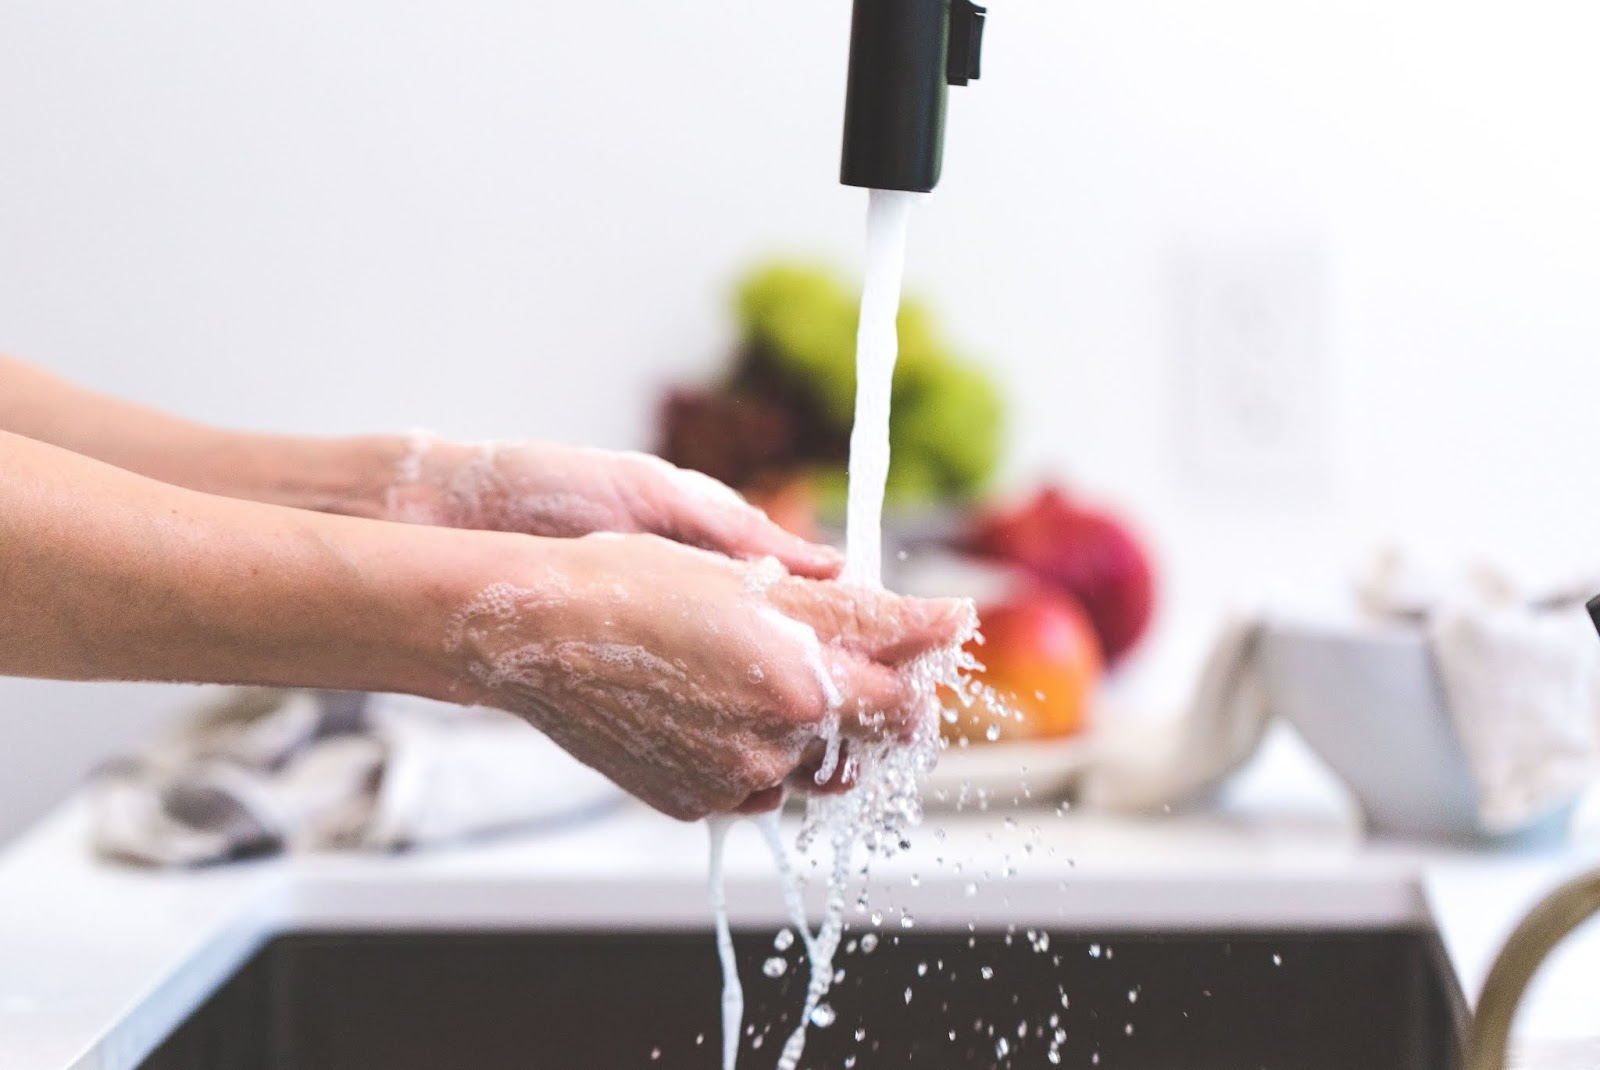 Obsessive Hand Washing - at the Source of Compulsion | Health 2019